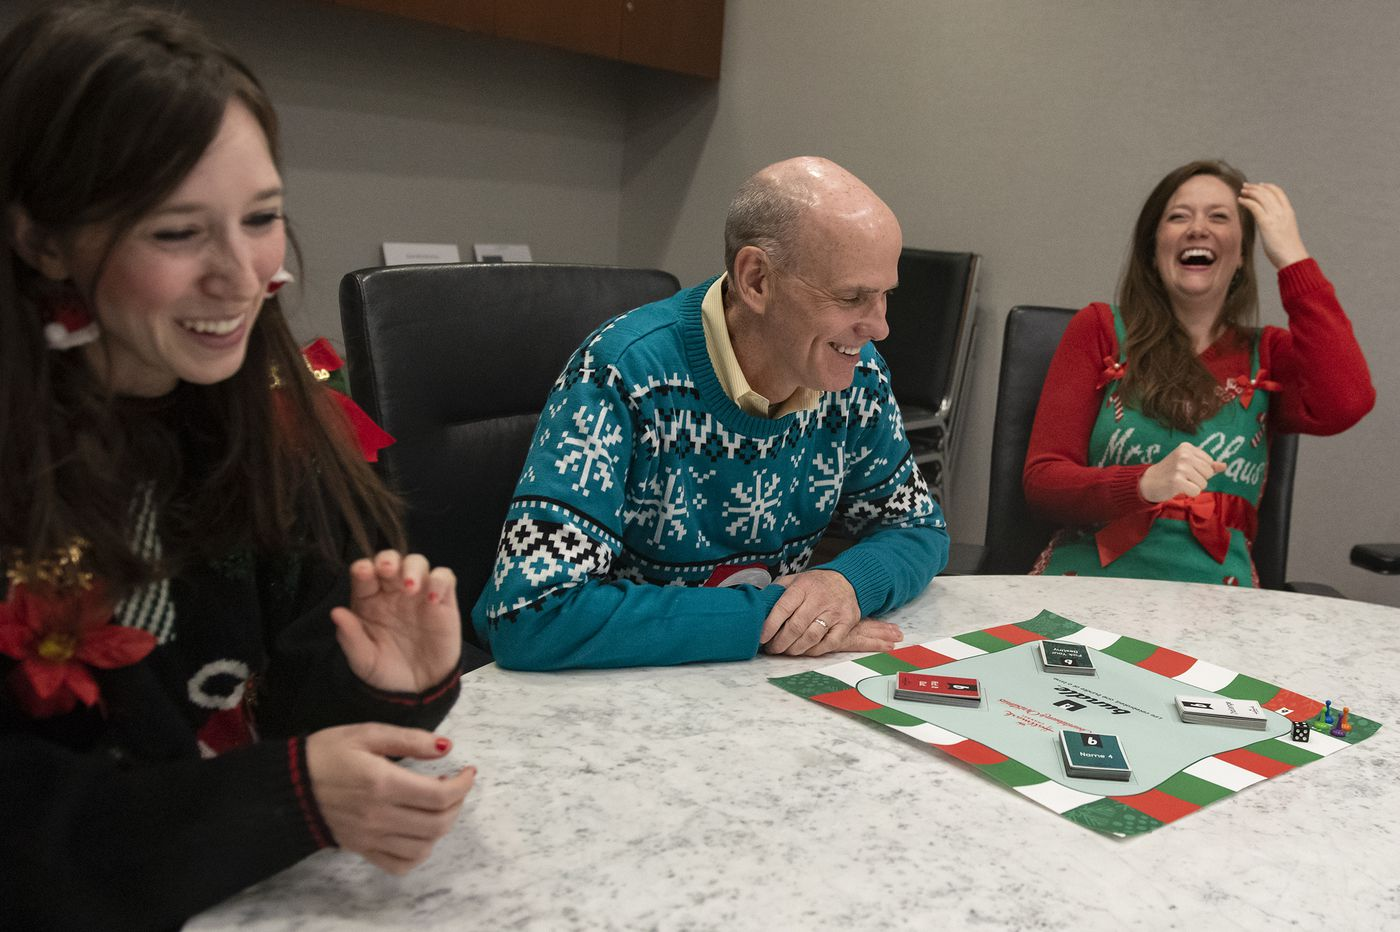 Hallmark Channel picks 2 sisters from Pennsylvania to develop 'Countdown to Christmas' board game